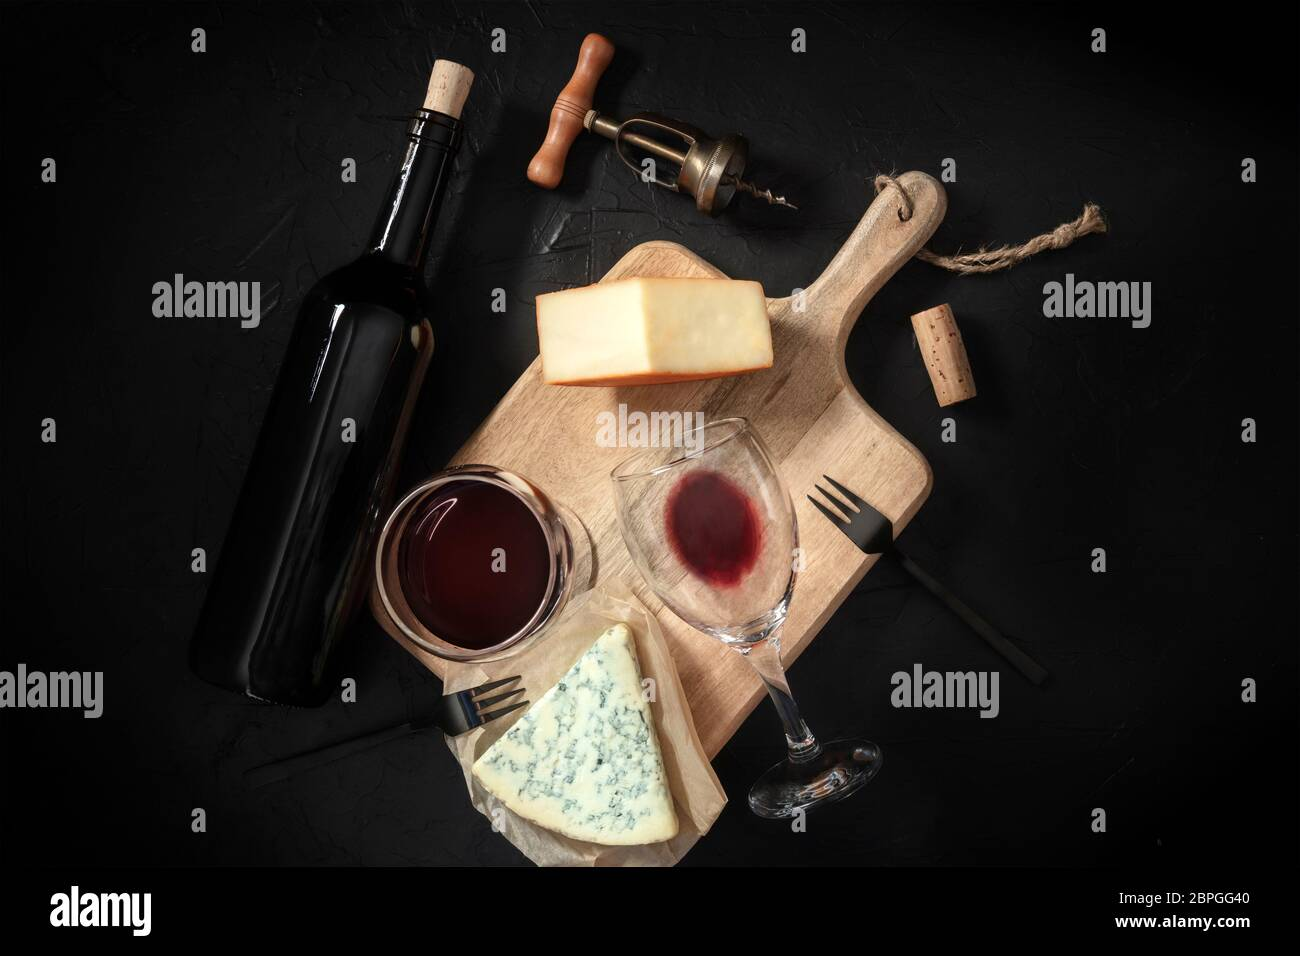 Wine and cheese tasting, shot from above on a black background, with a vintage corkscrew and a bottle Stock Photo